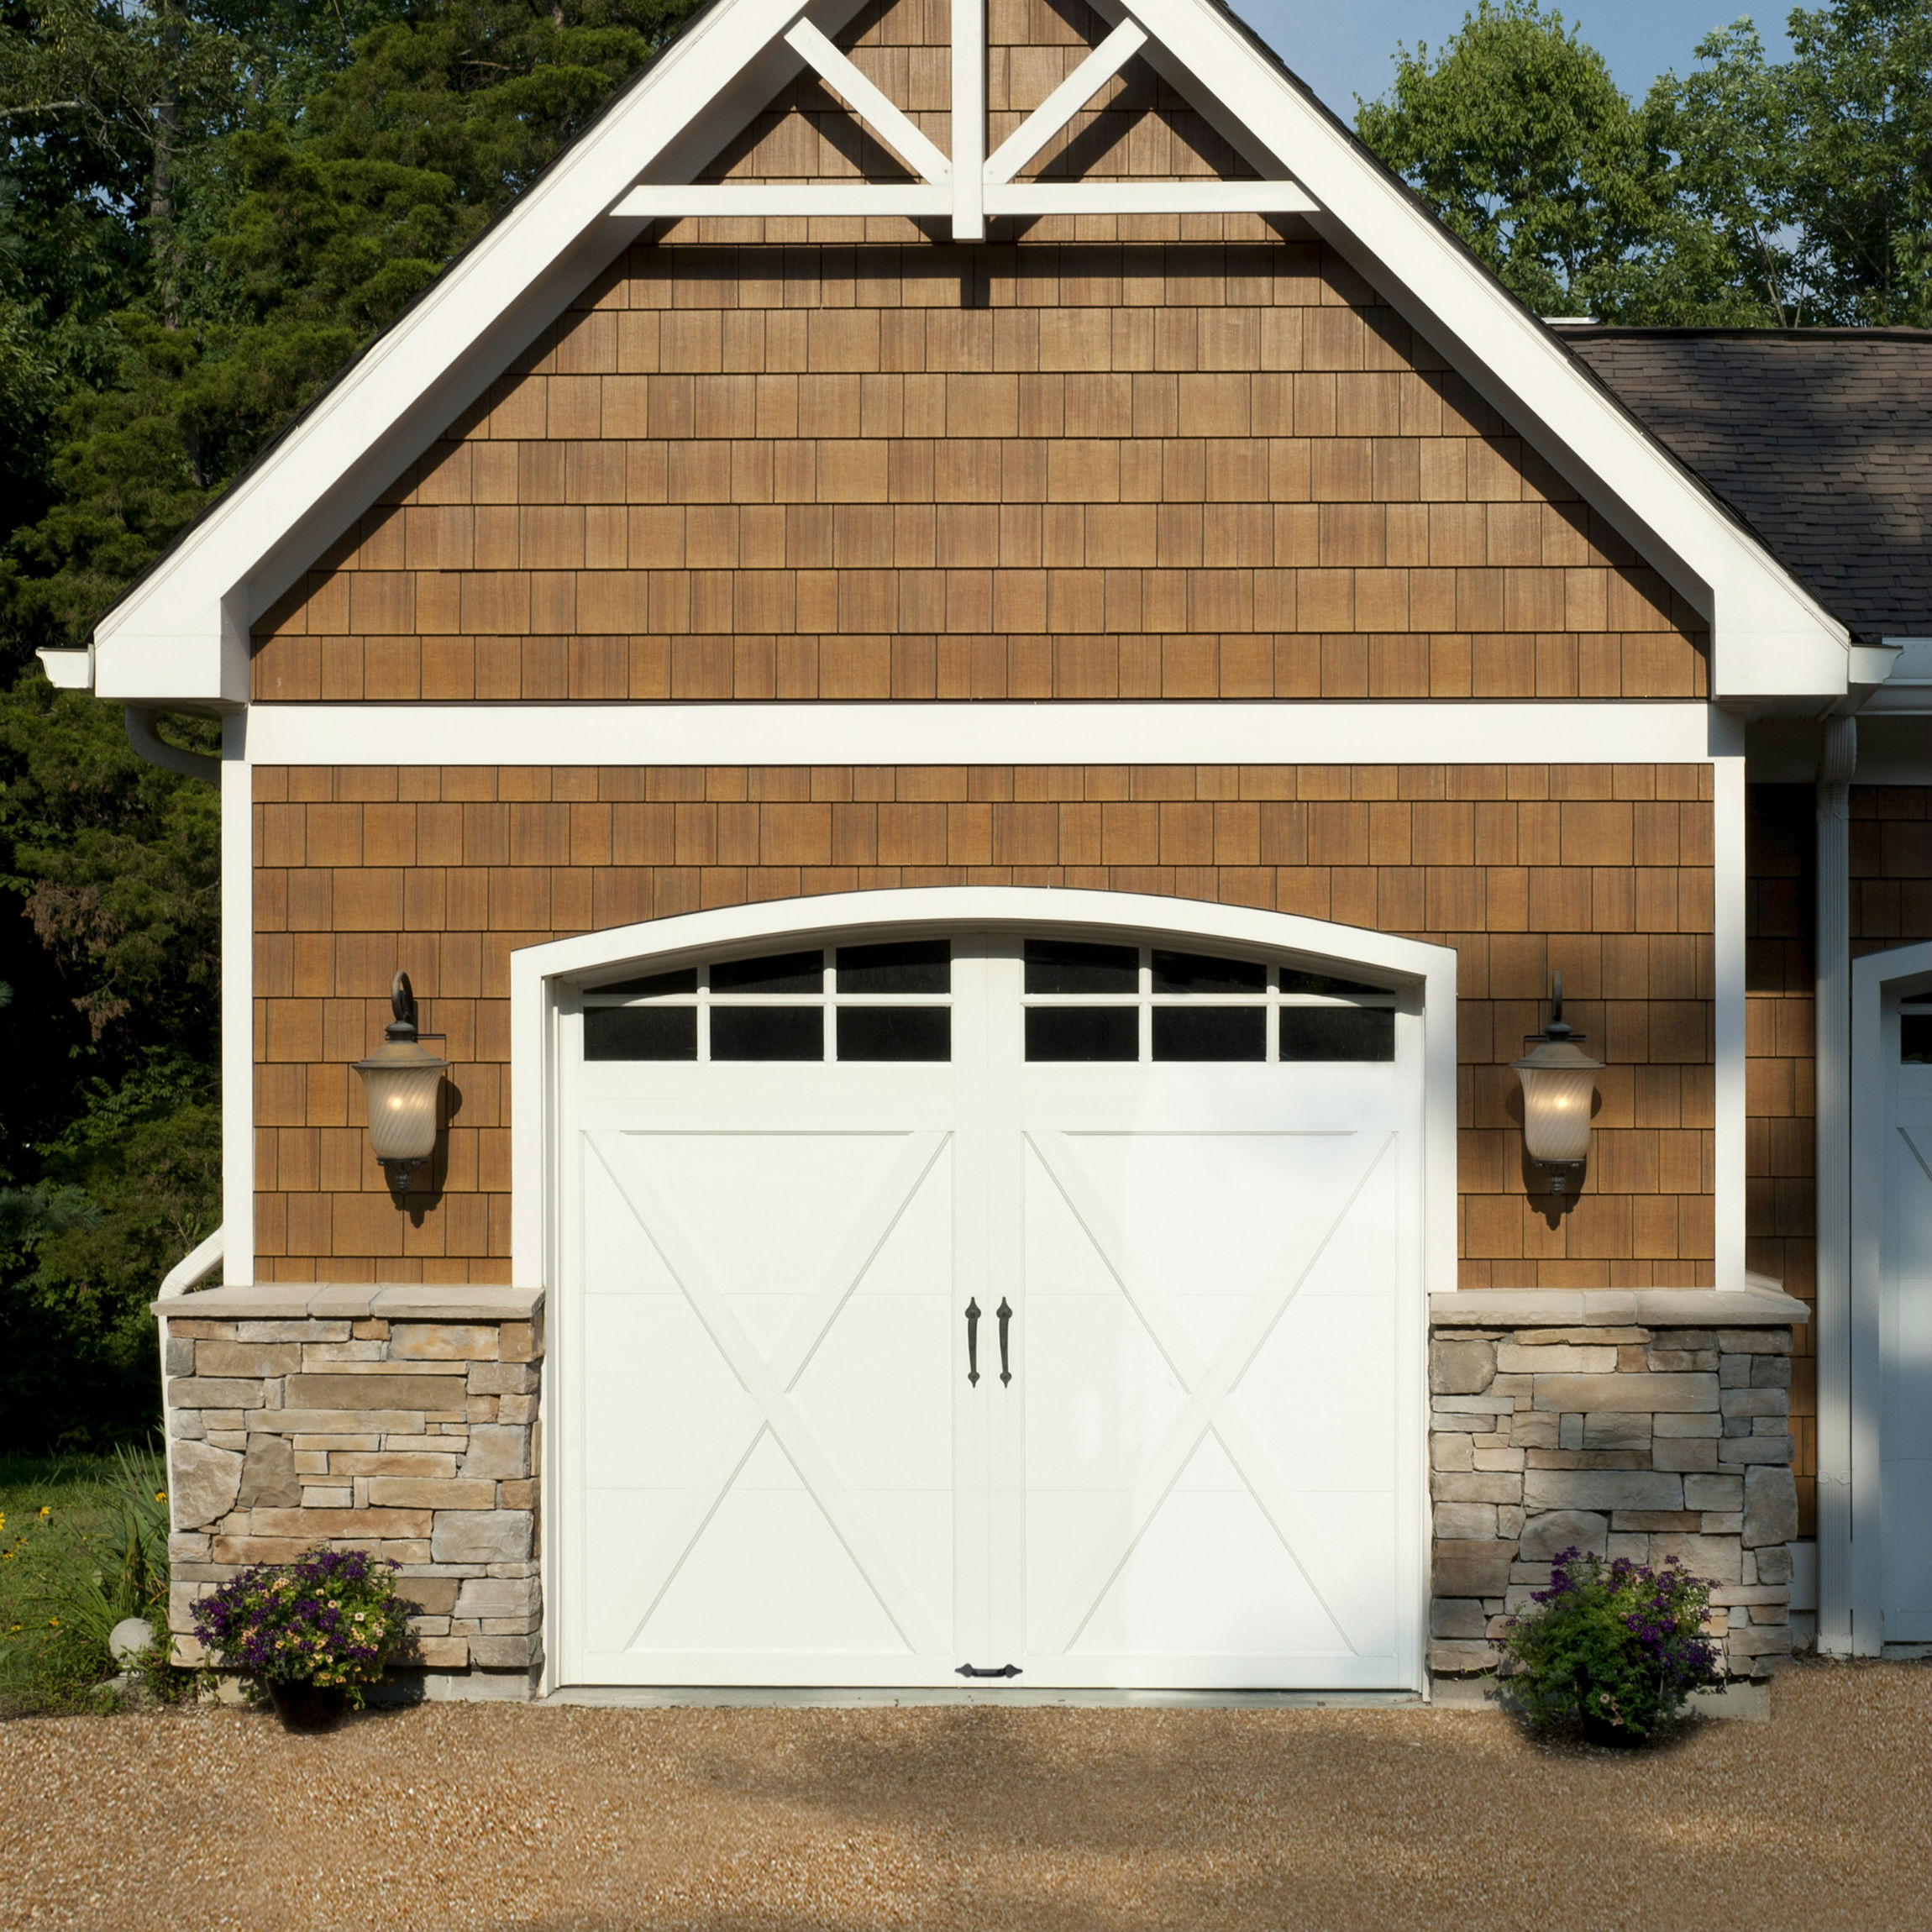 2300 #8D683E Residential Door Gallery – Garage Doors Only St. George & Payson  pic Coachman Garage Doors 38312300